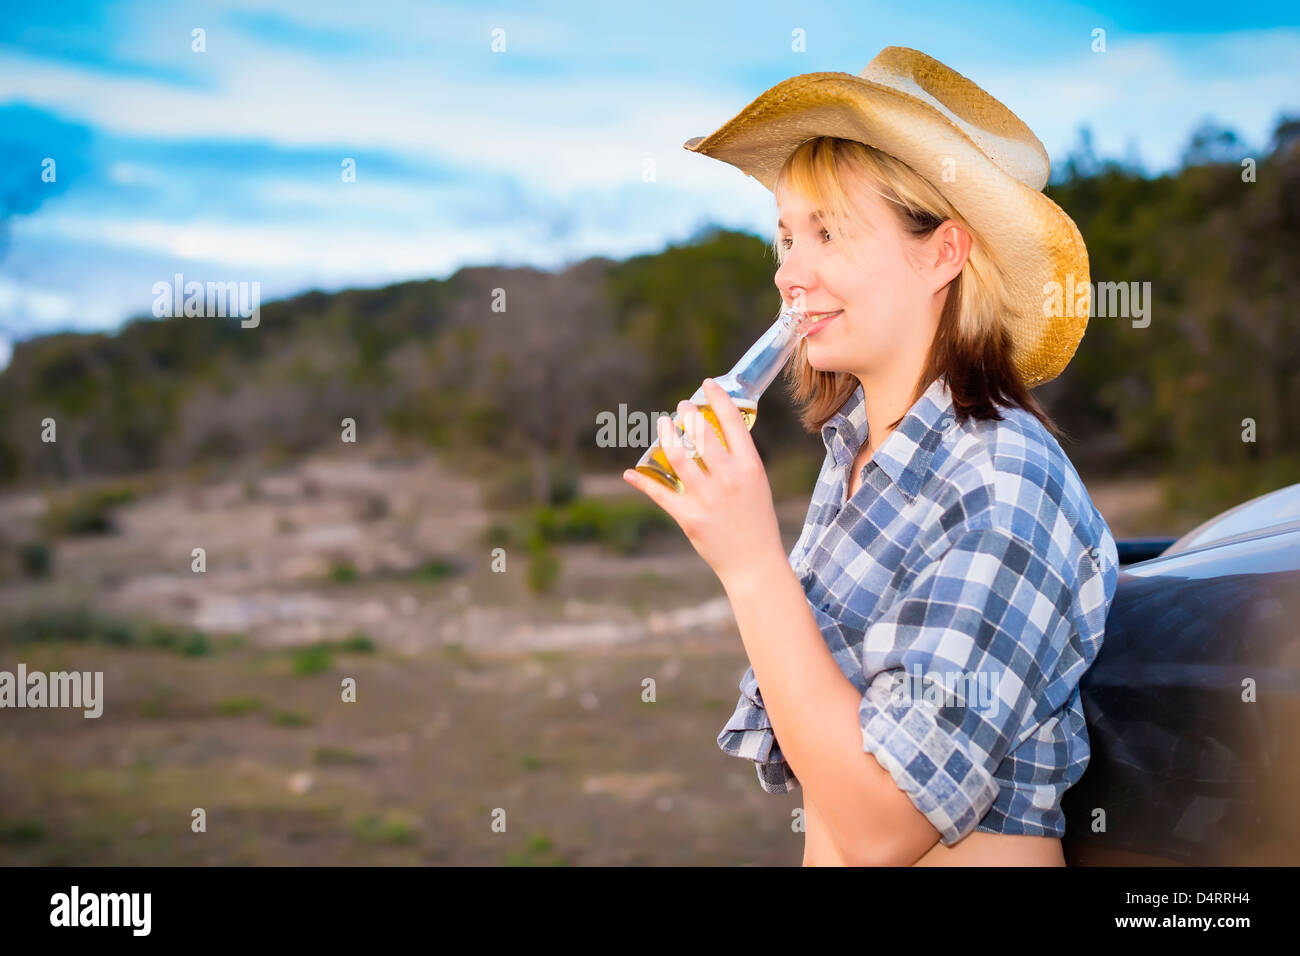 Portrait of country girl holding bottle of beer, Female 19 Caucasian, Texas, USA - Stock Image